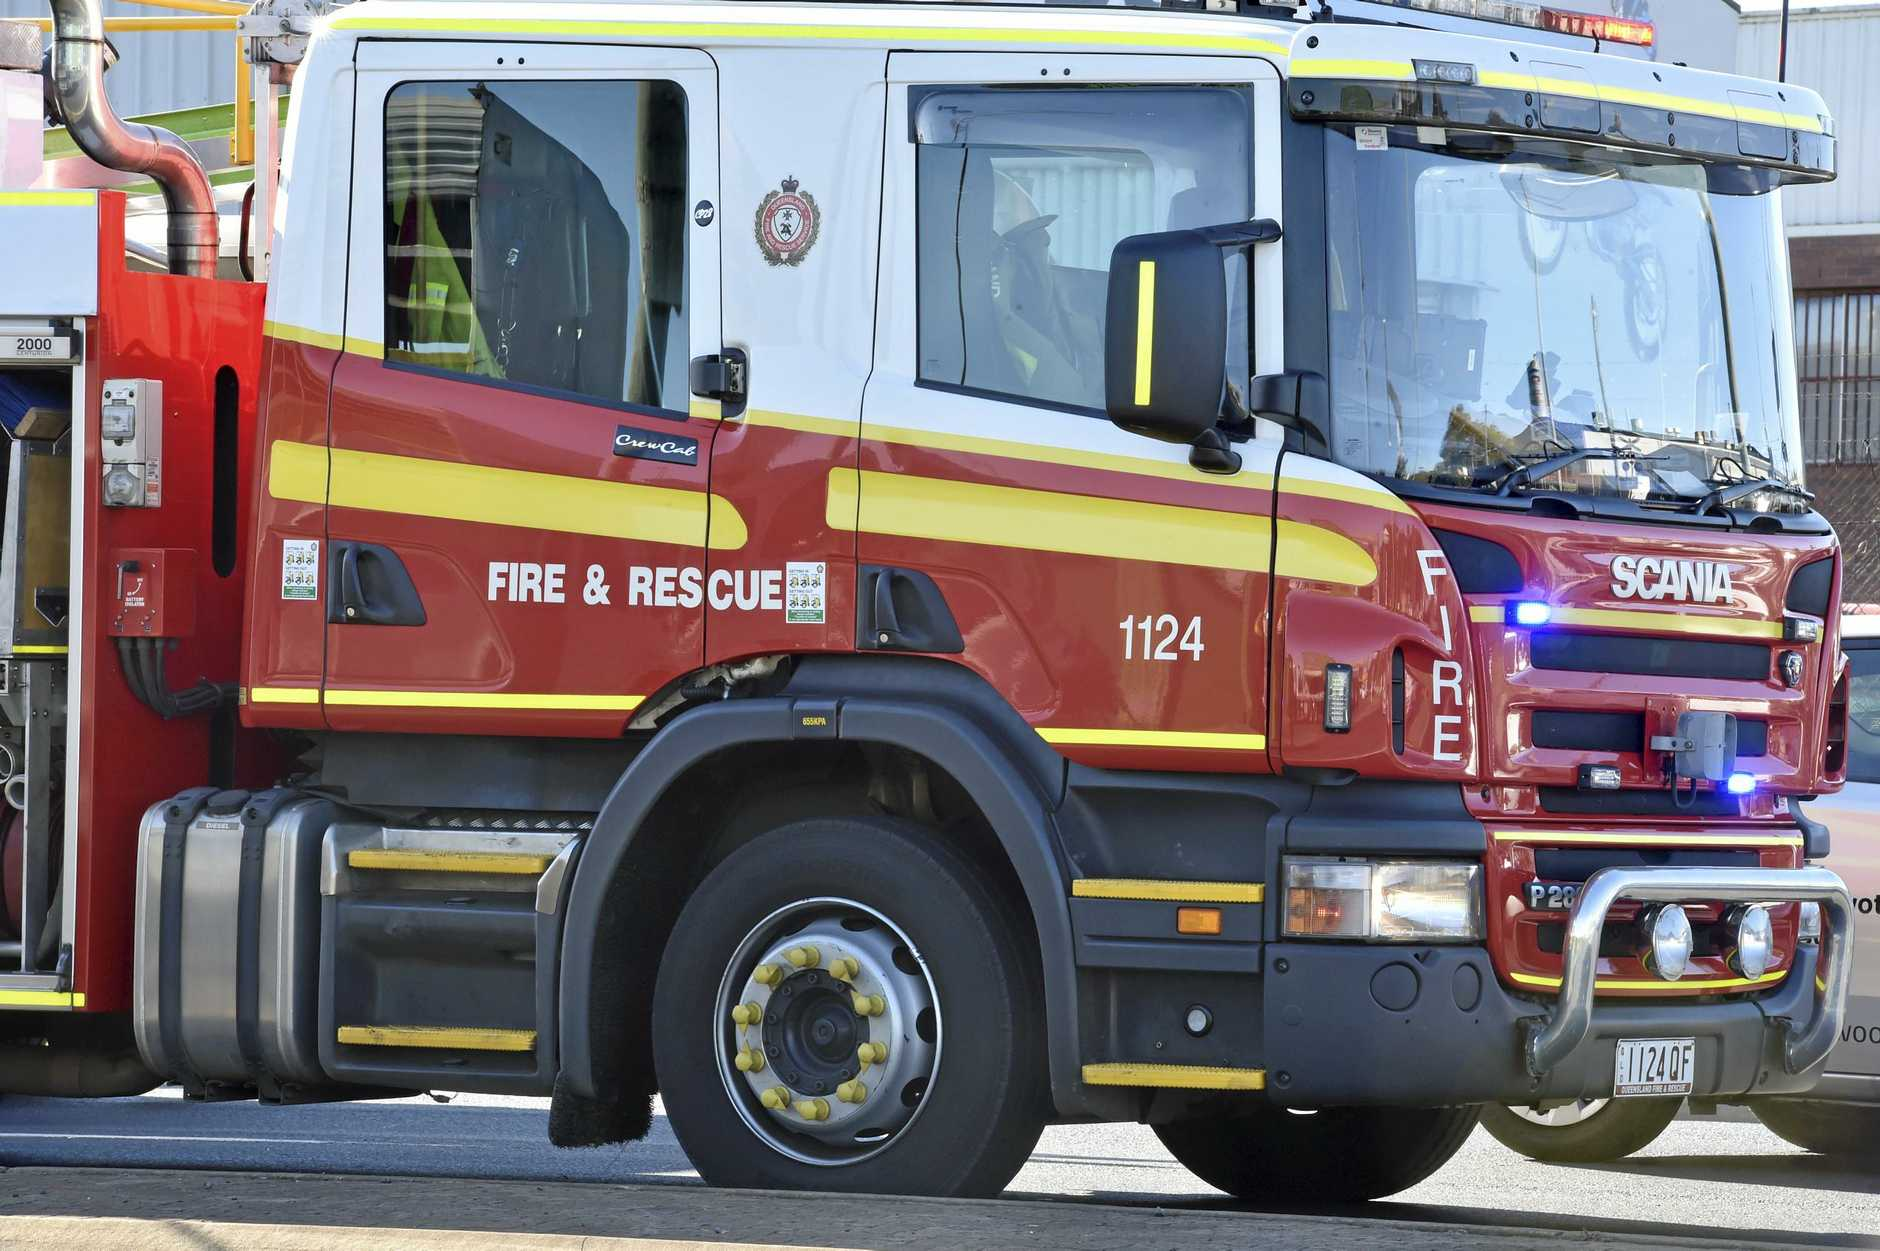 Firefighters were called to an industrial shed that was alight with smoke billowing from the building early Tuesday morning.